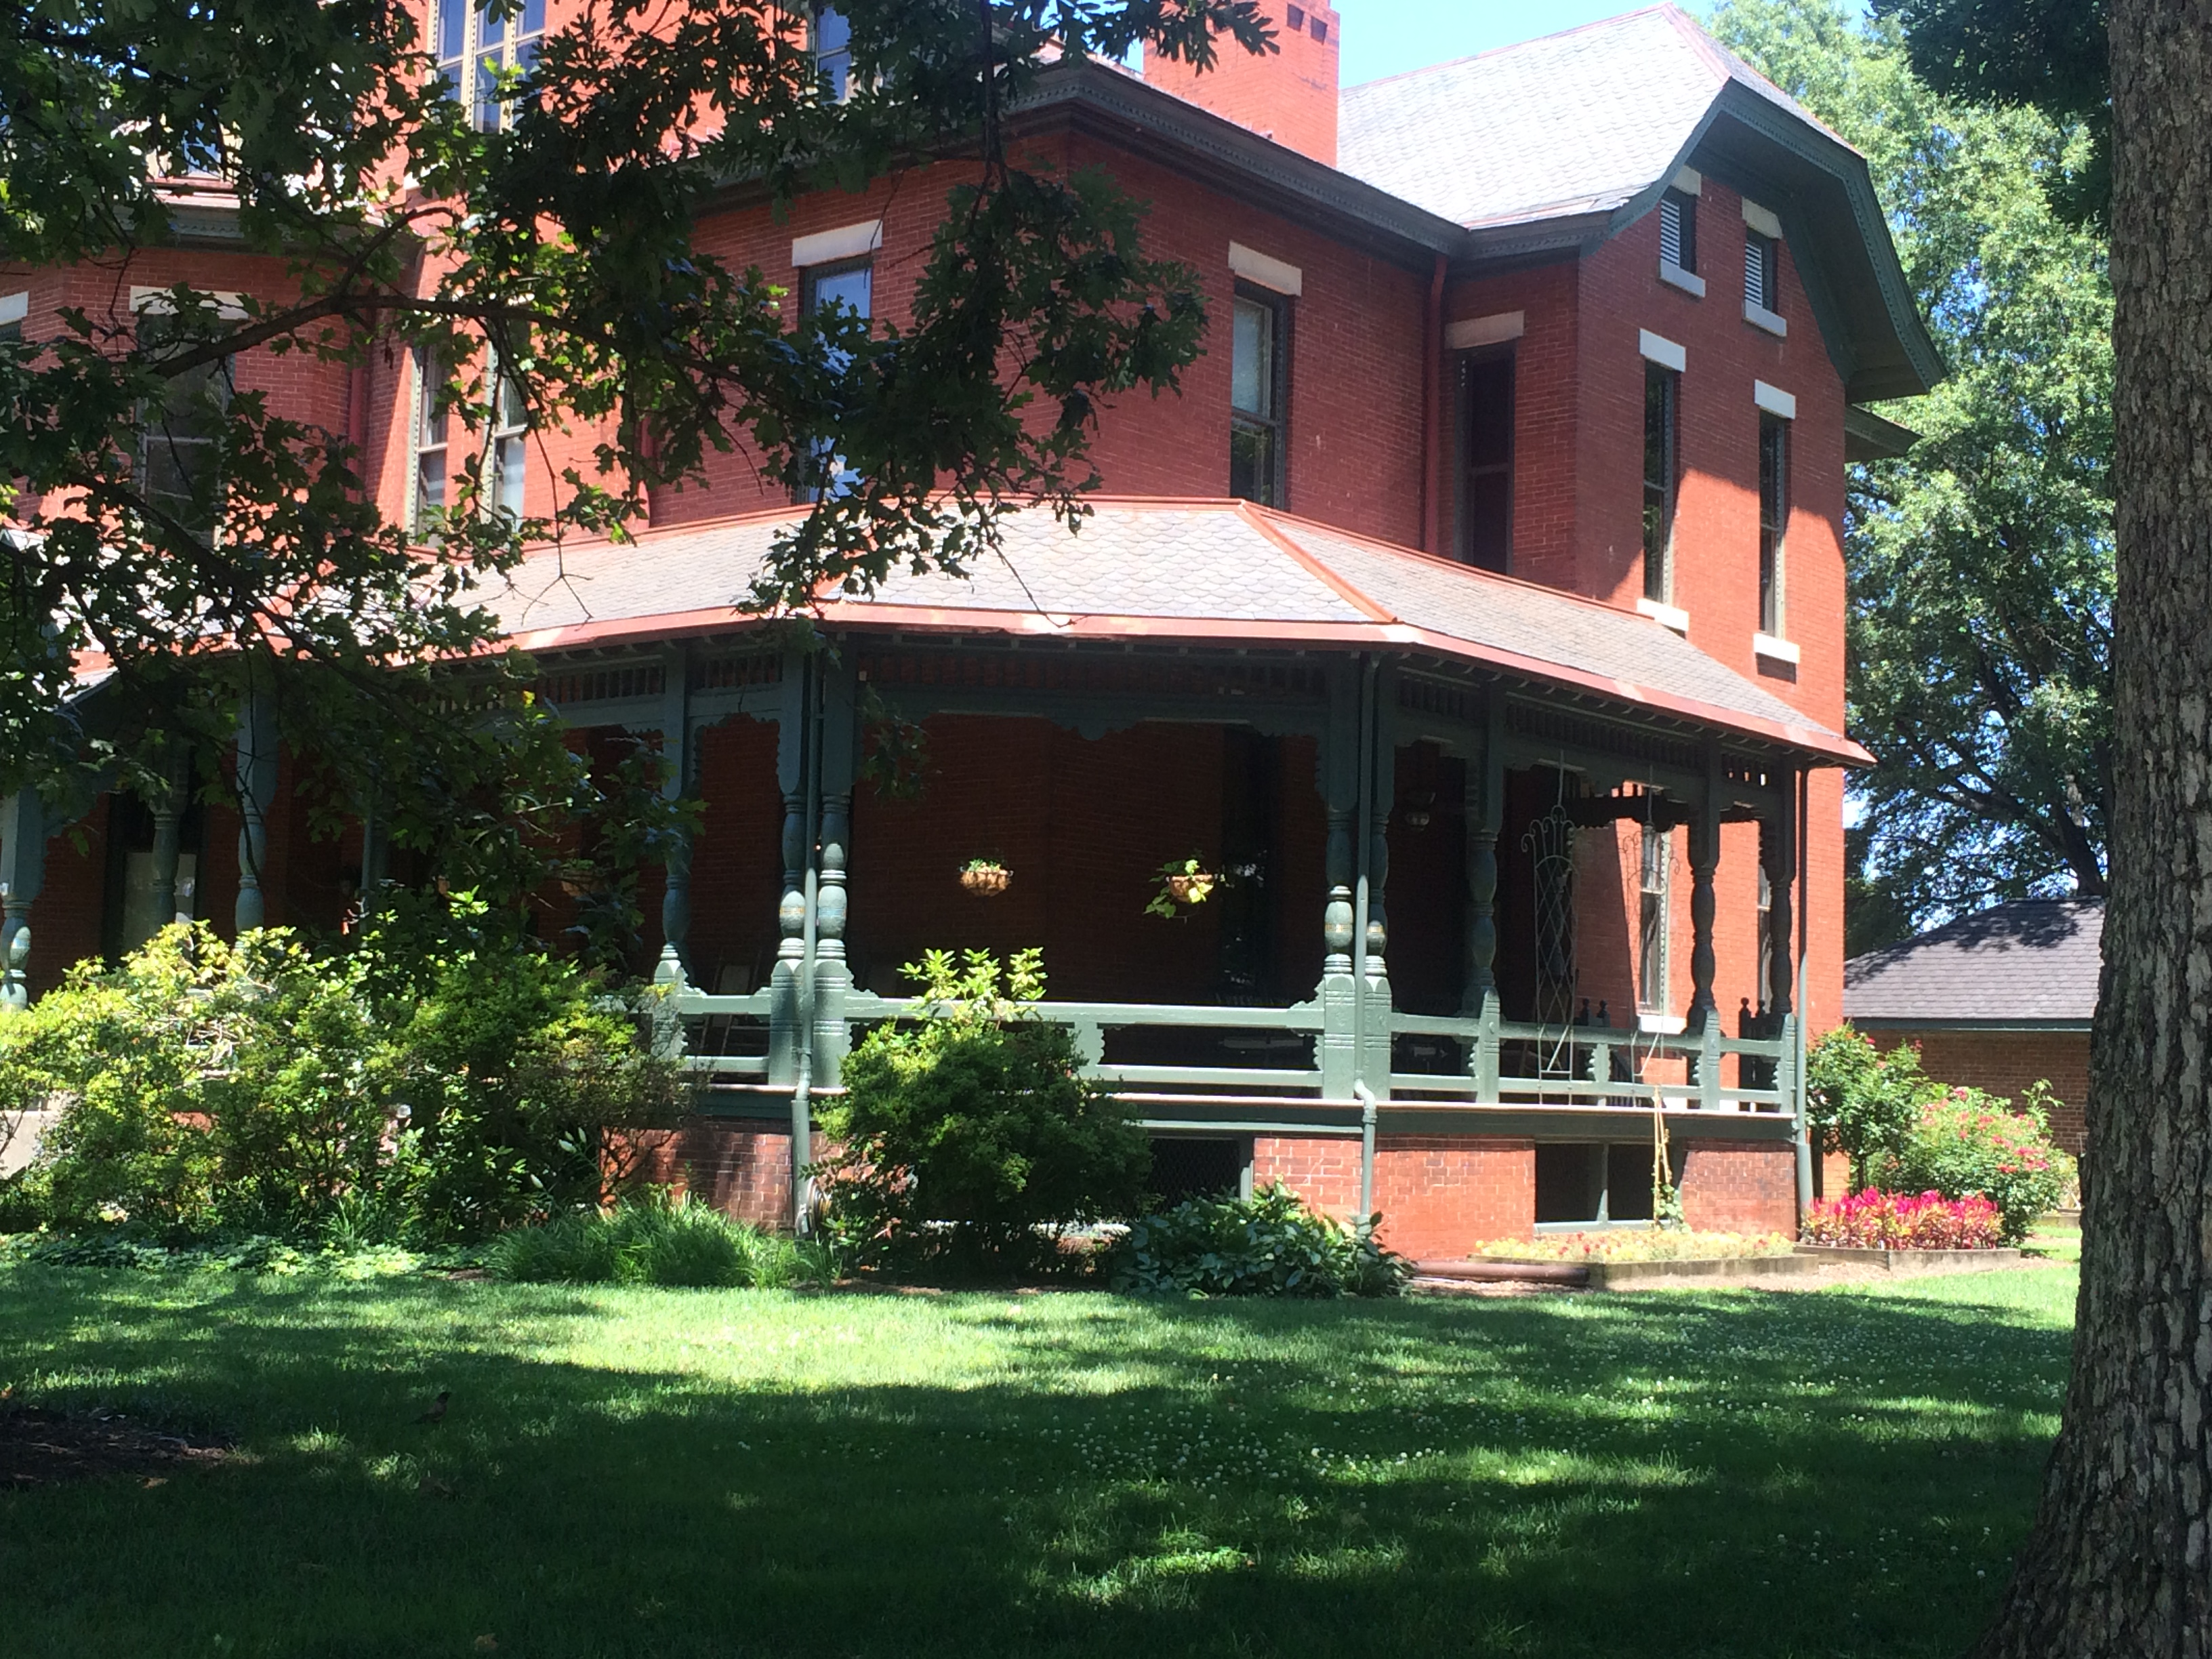 A view of the southern facade taken from an angle. This view showcases the verandah and some of the landscaping.